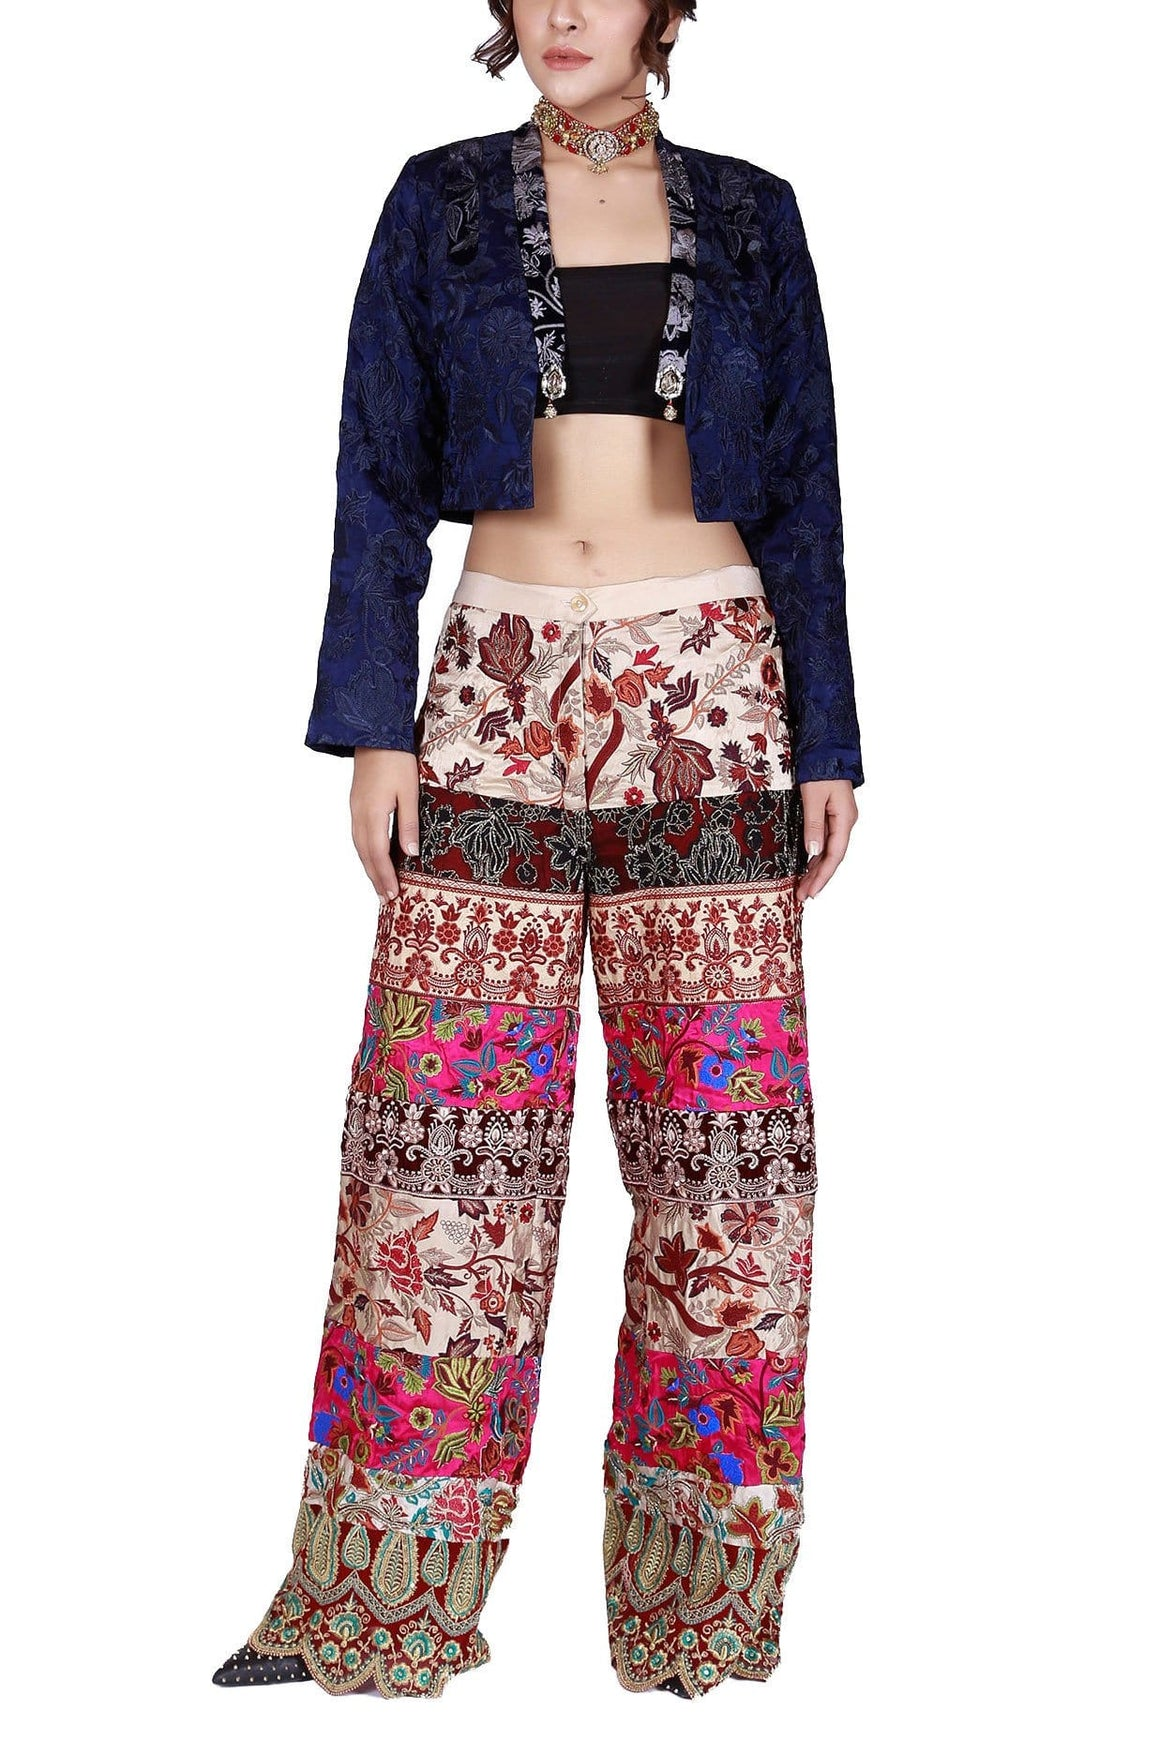 FnkAsia - Indigo Silk Embroidered Vest With Pants